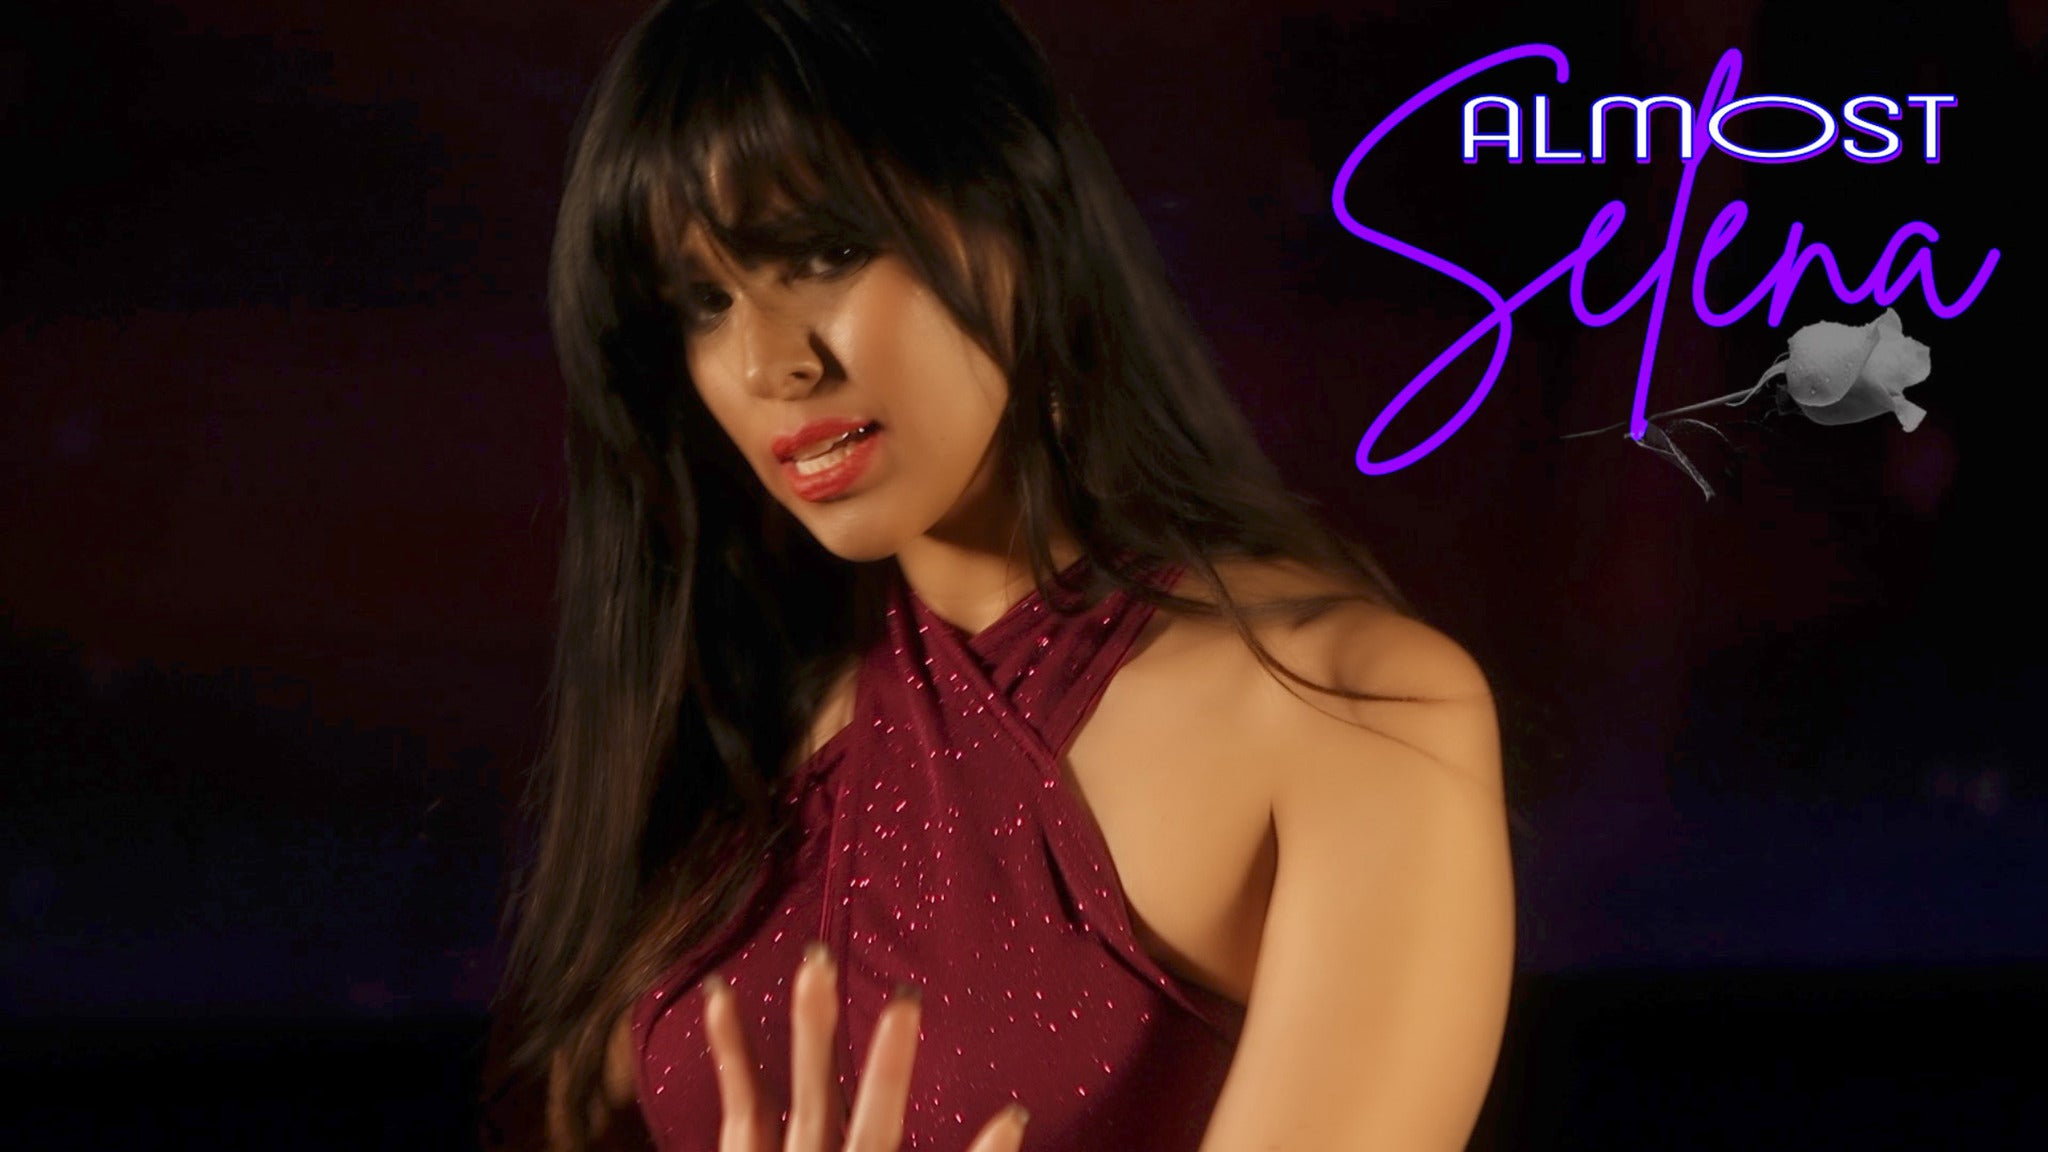 Almost Selena - A Tribute to Selena Quintanilla